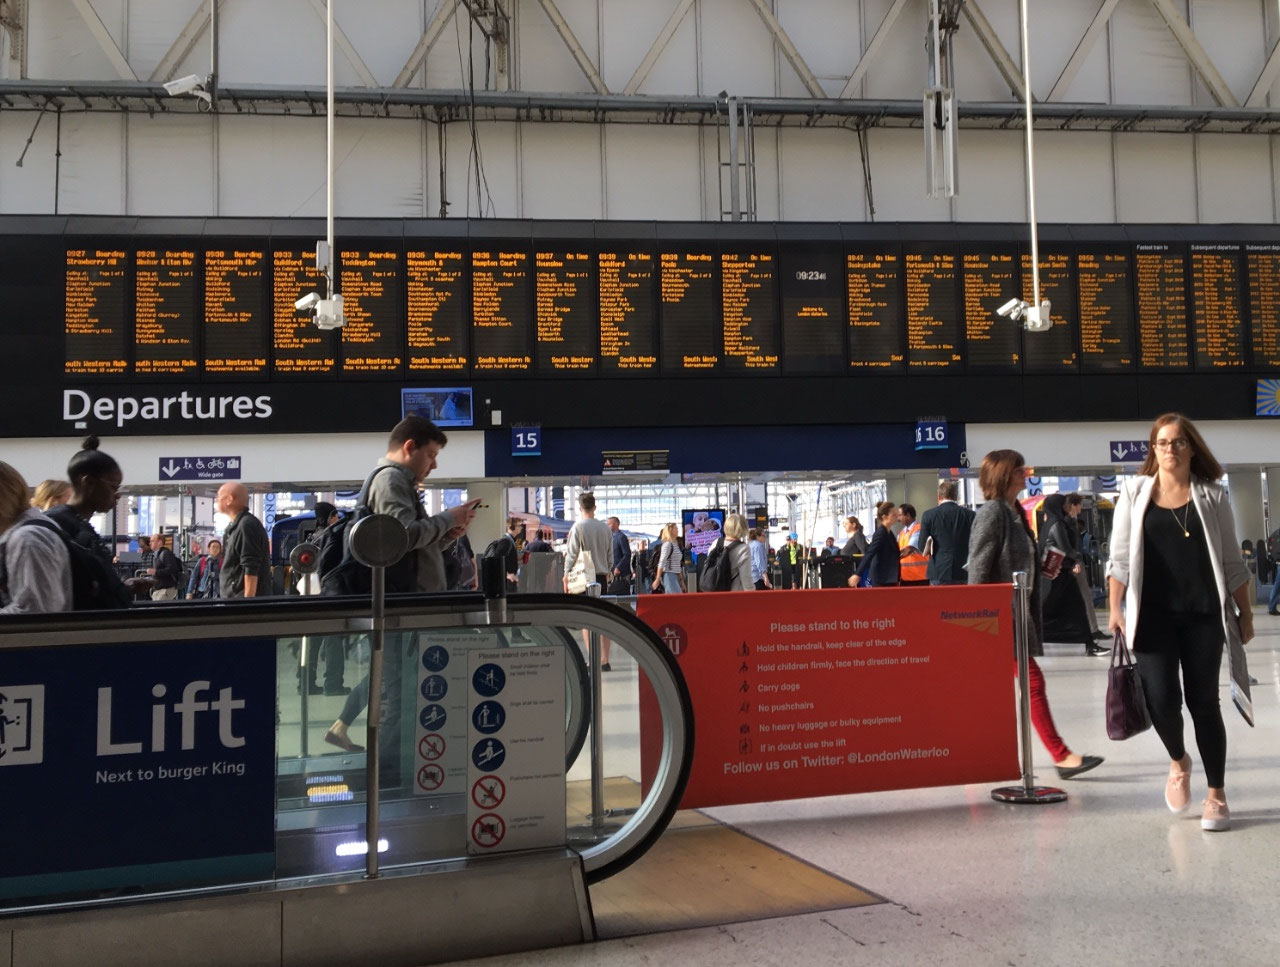 Watching the departure board at Waterloo Station